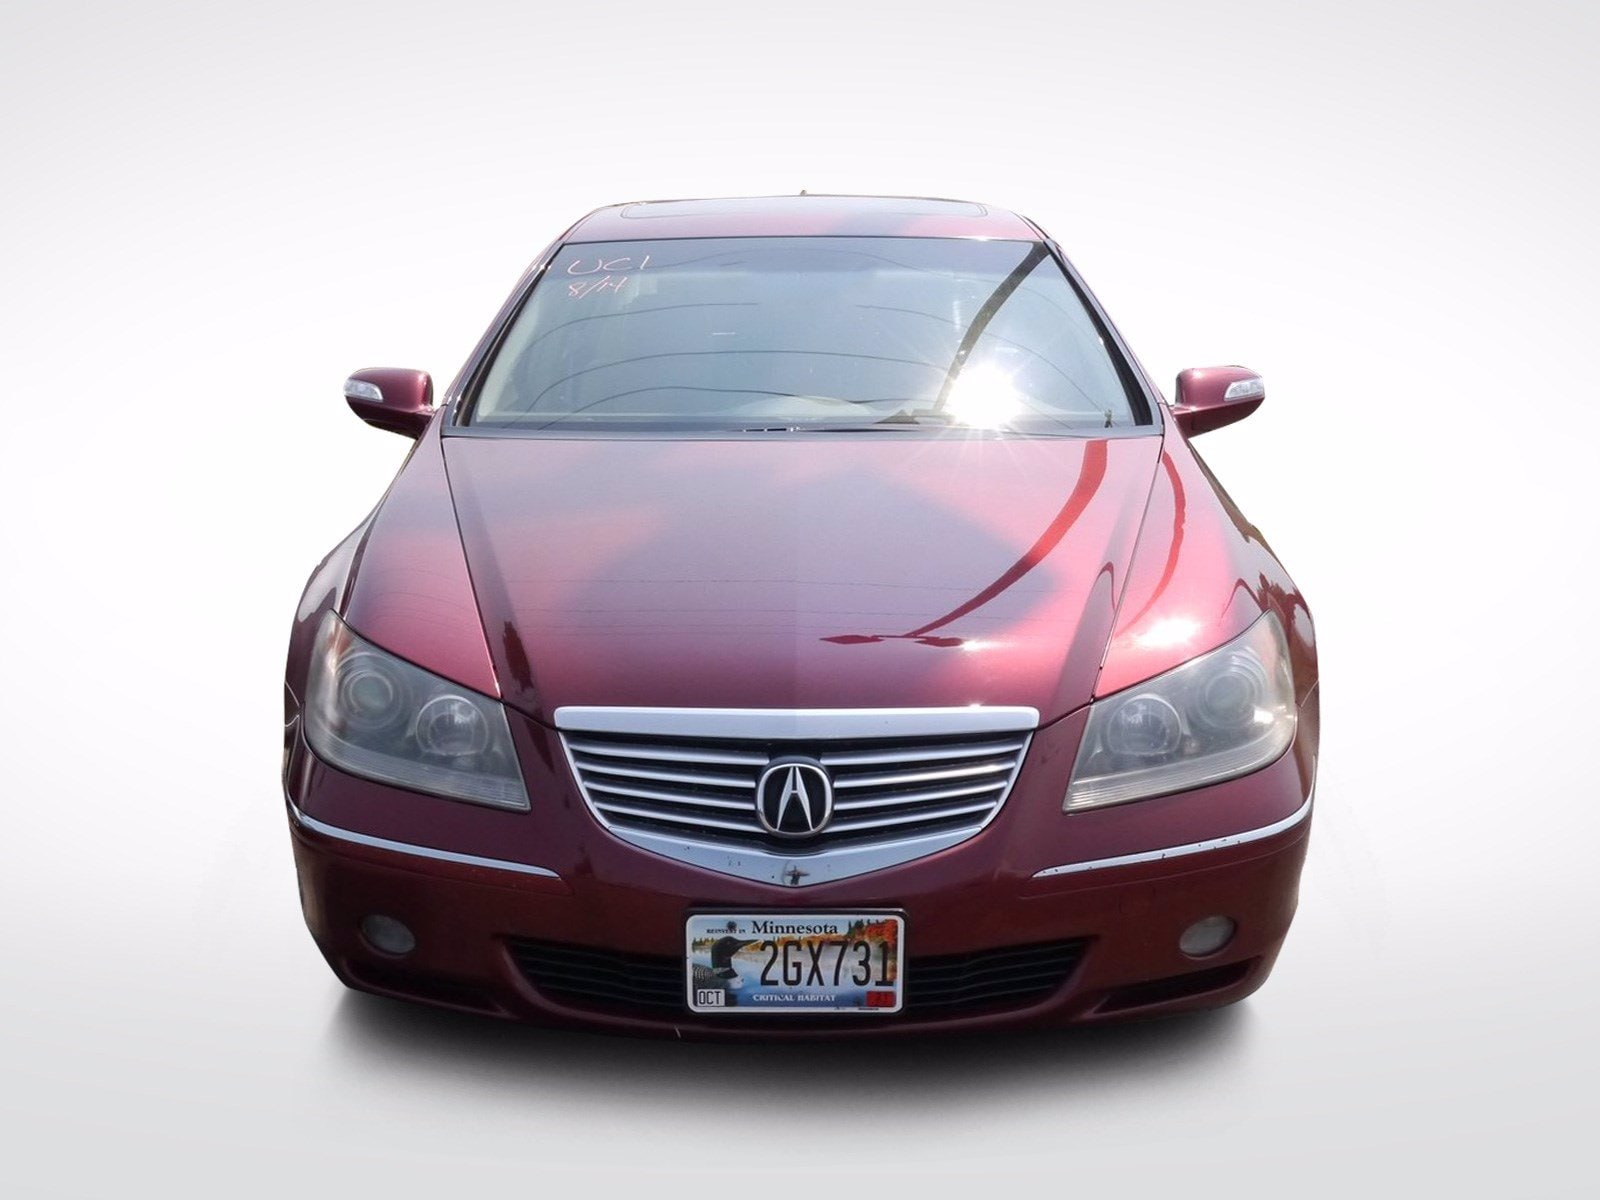 Used 2005 Acura RL  with VIN JH4KB16585C012333 for sale in Baxter, Minnesota